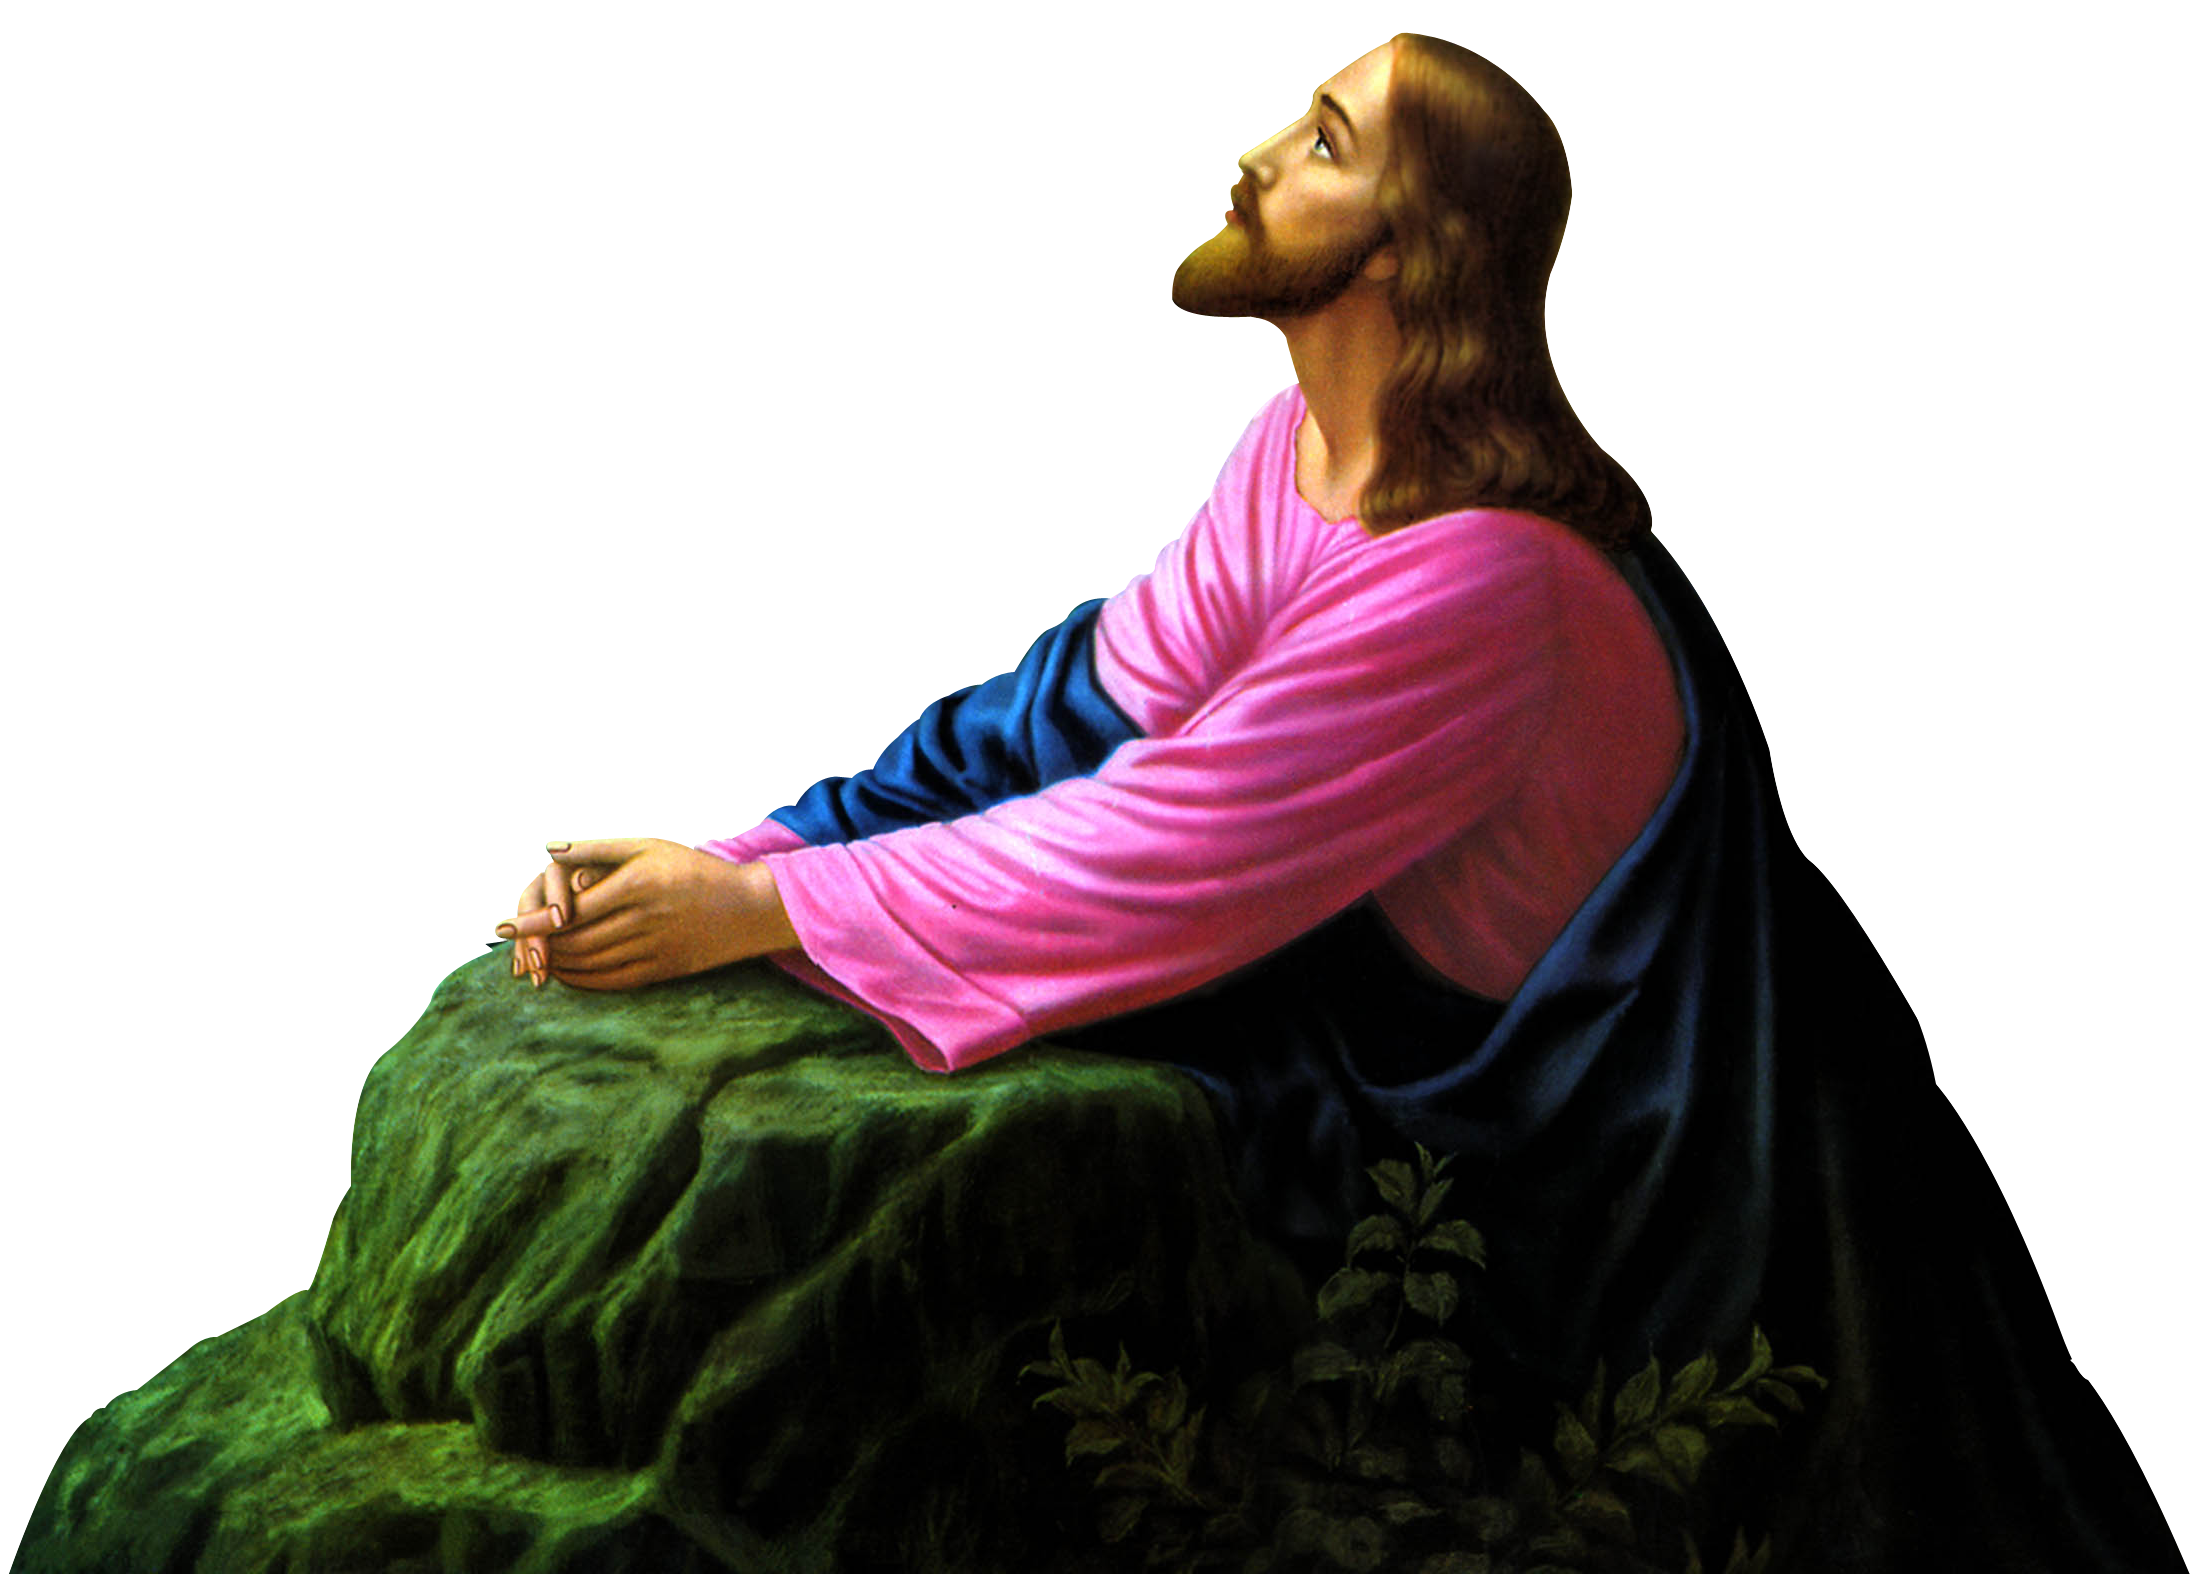 Jesus Christ Png Pic PNG Image